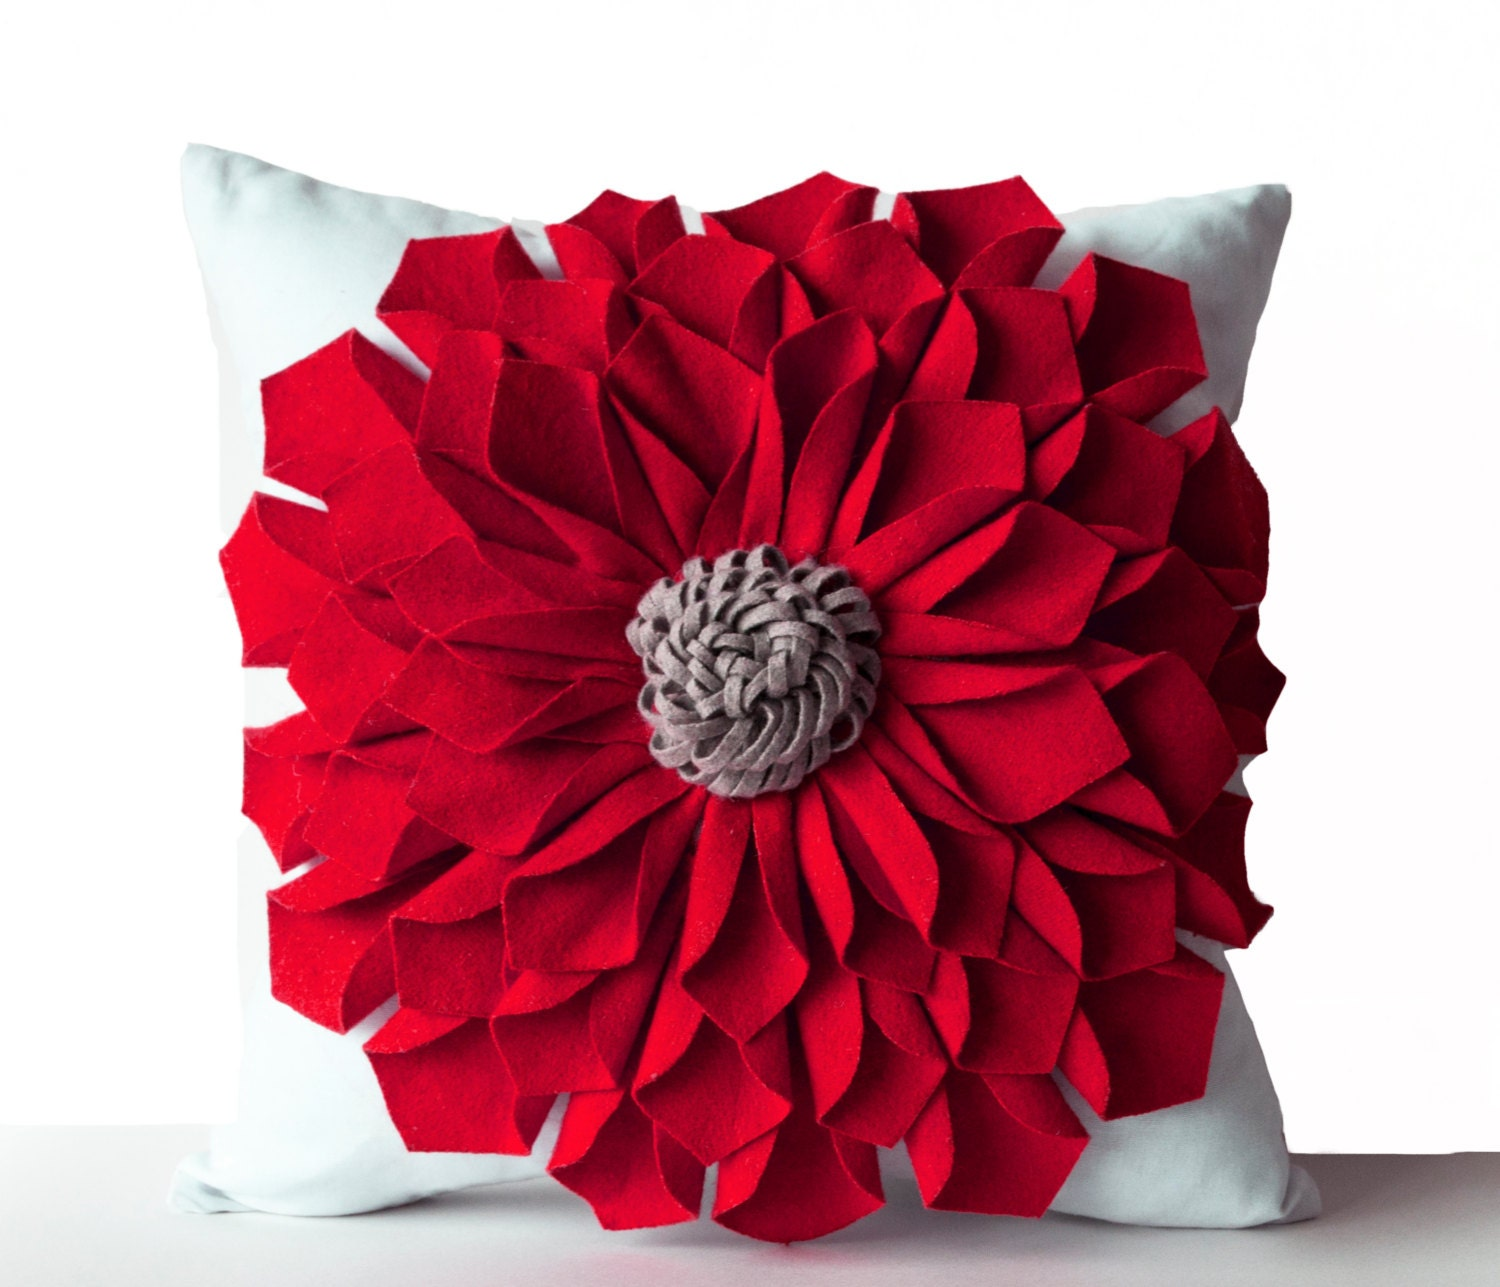 Throw Pillows With Large Flowers : Felt Flower Pillow Cover Red Gray White Pillow Case Floral